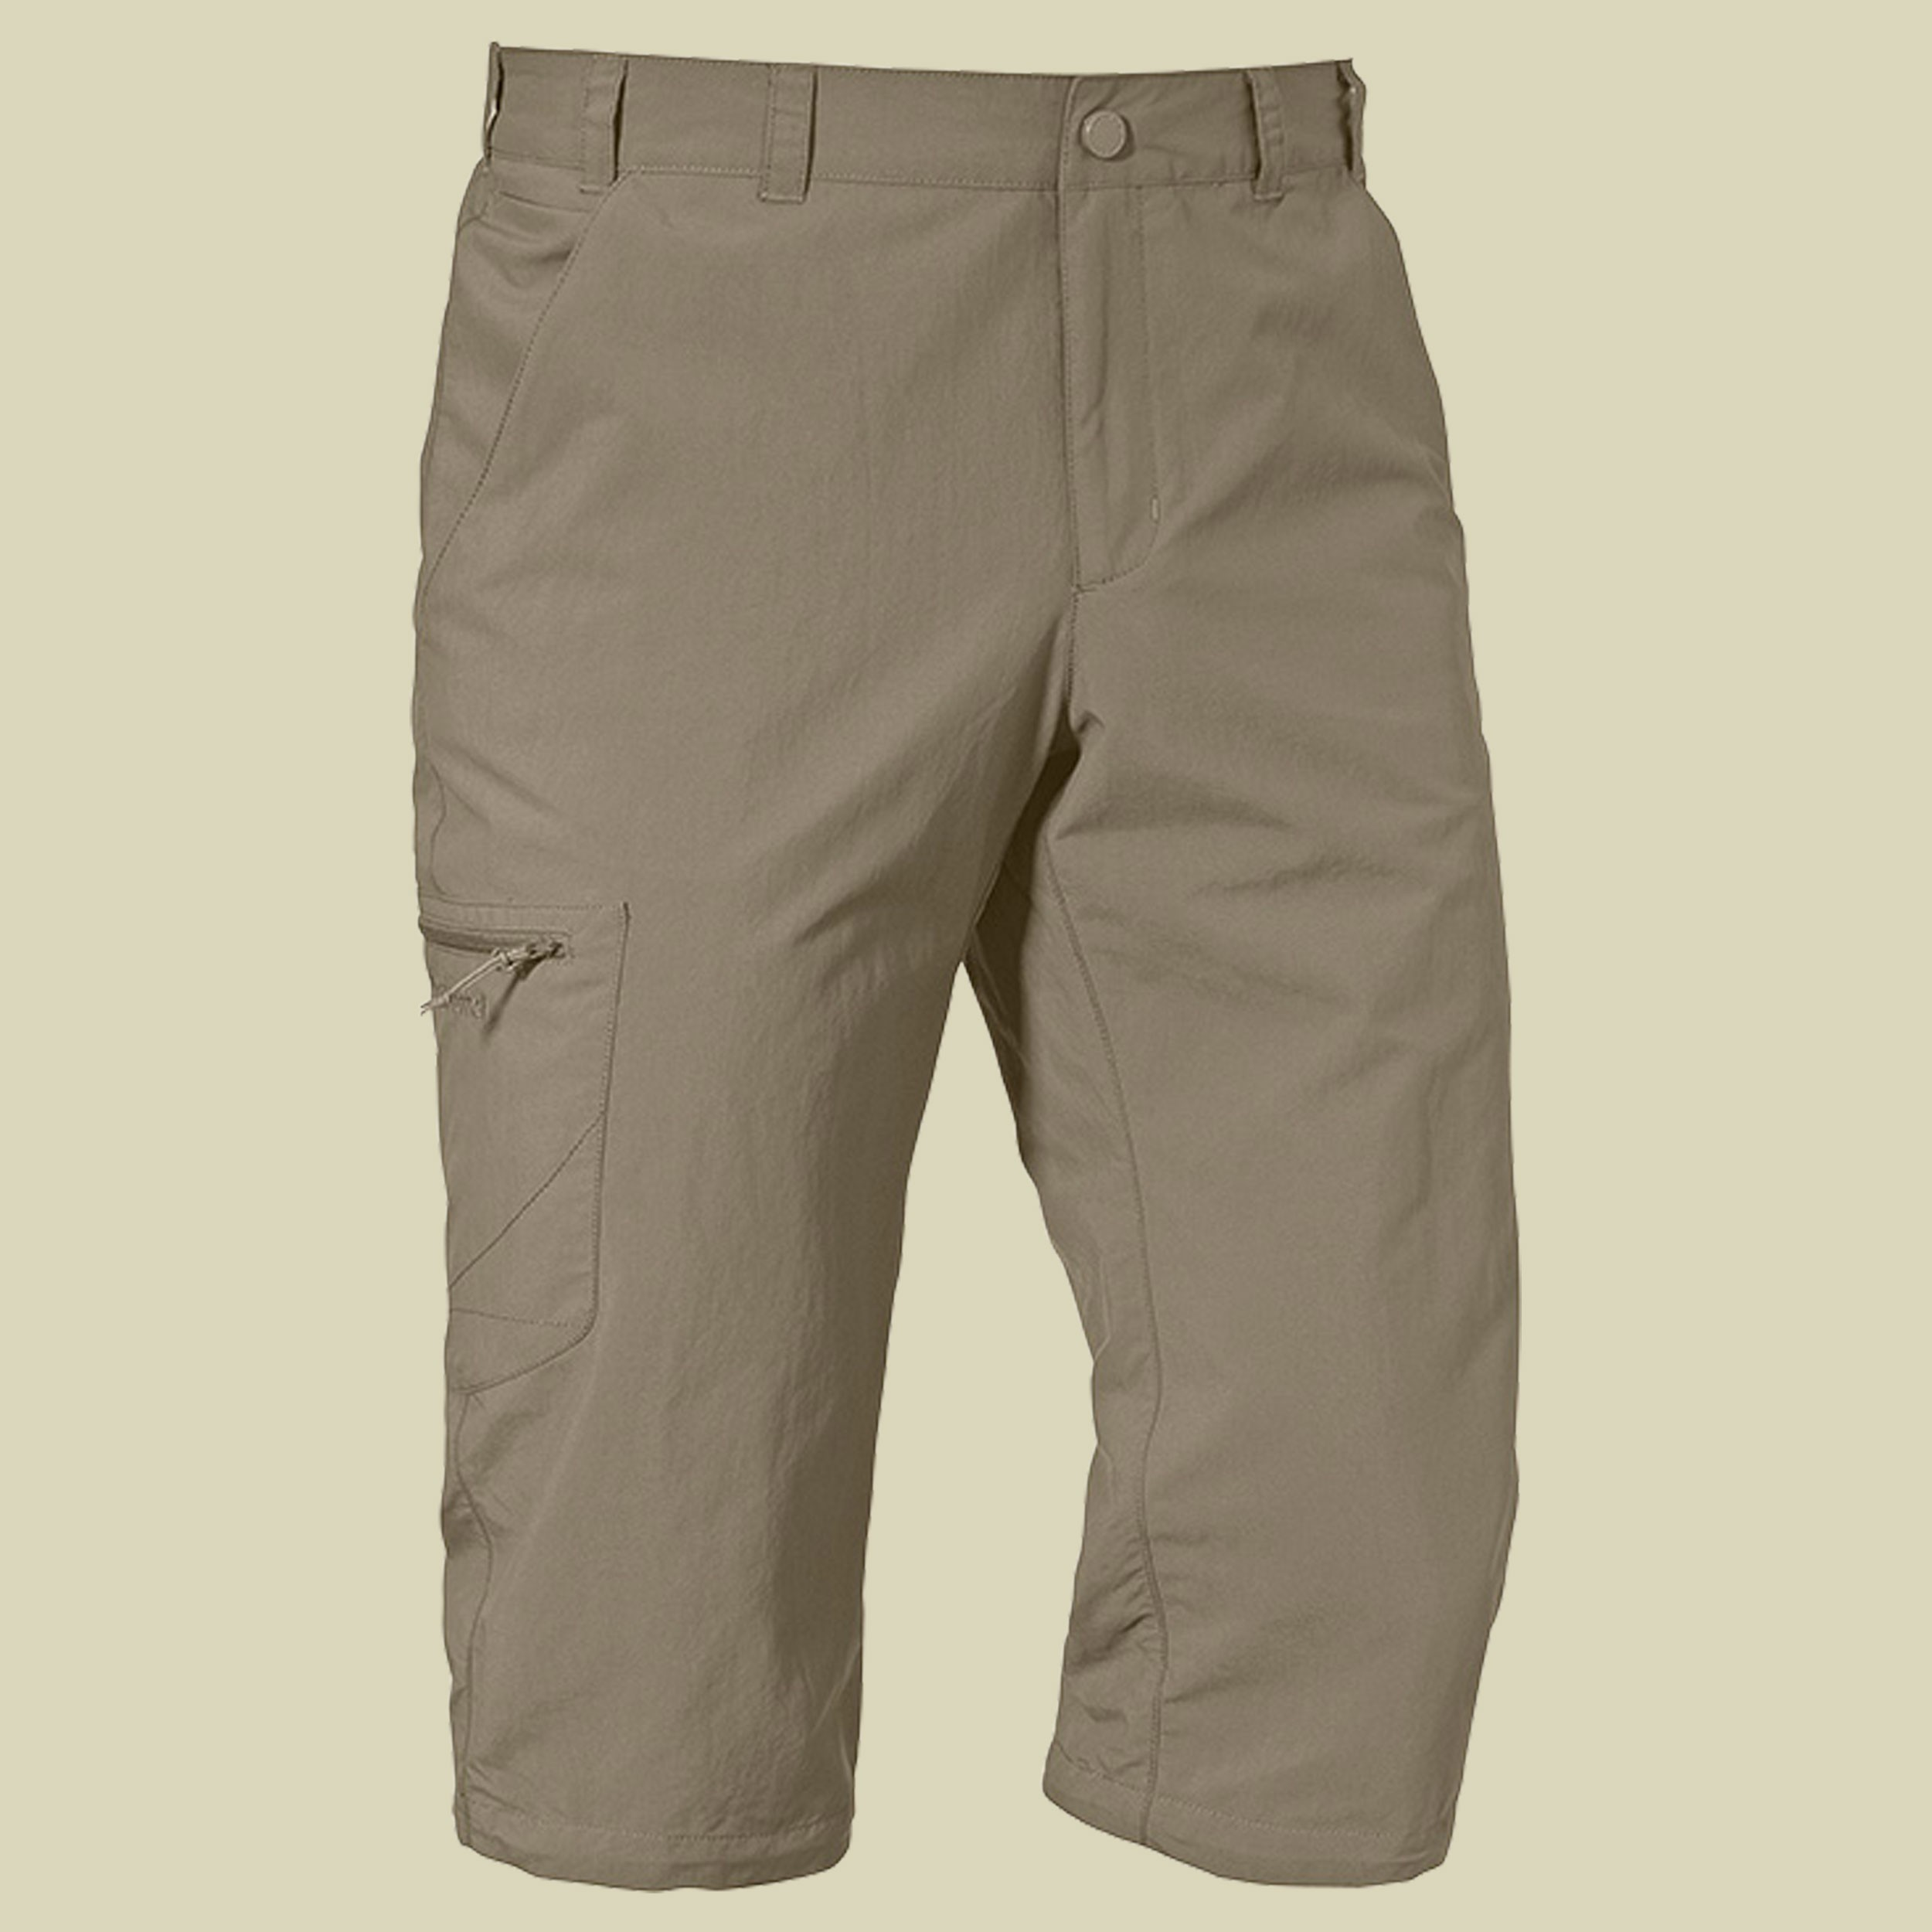 Pants Springdale1 Men